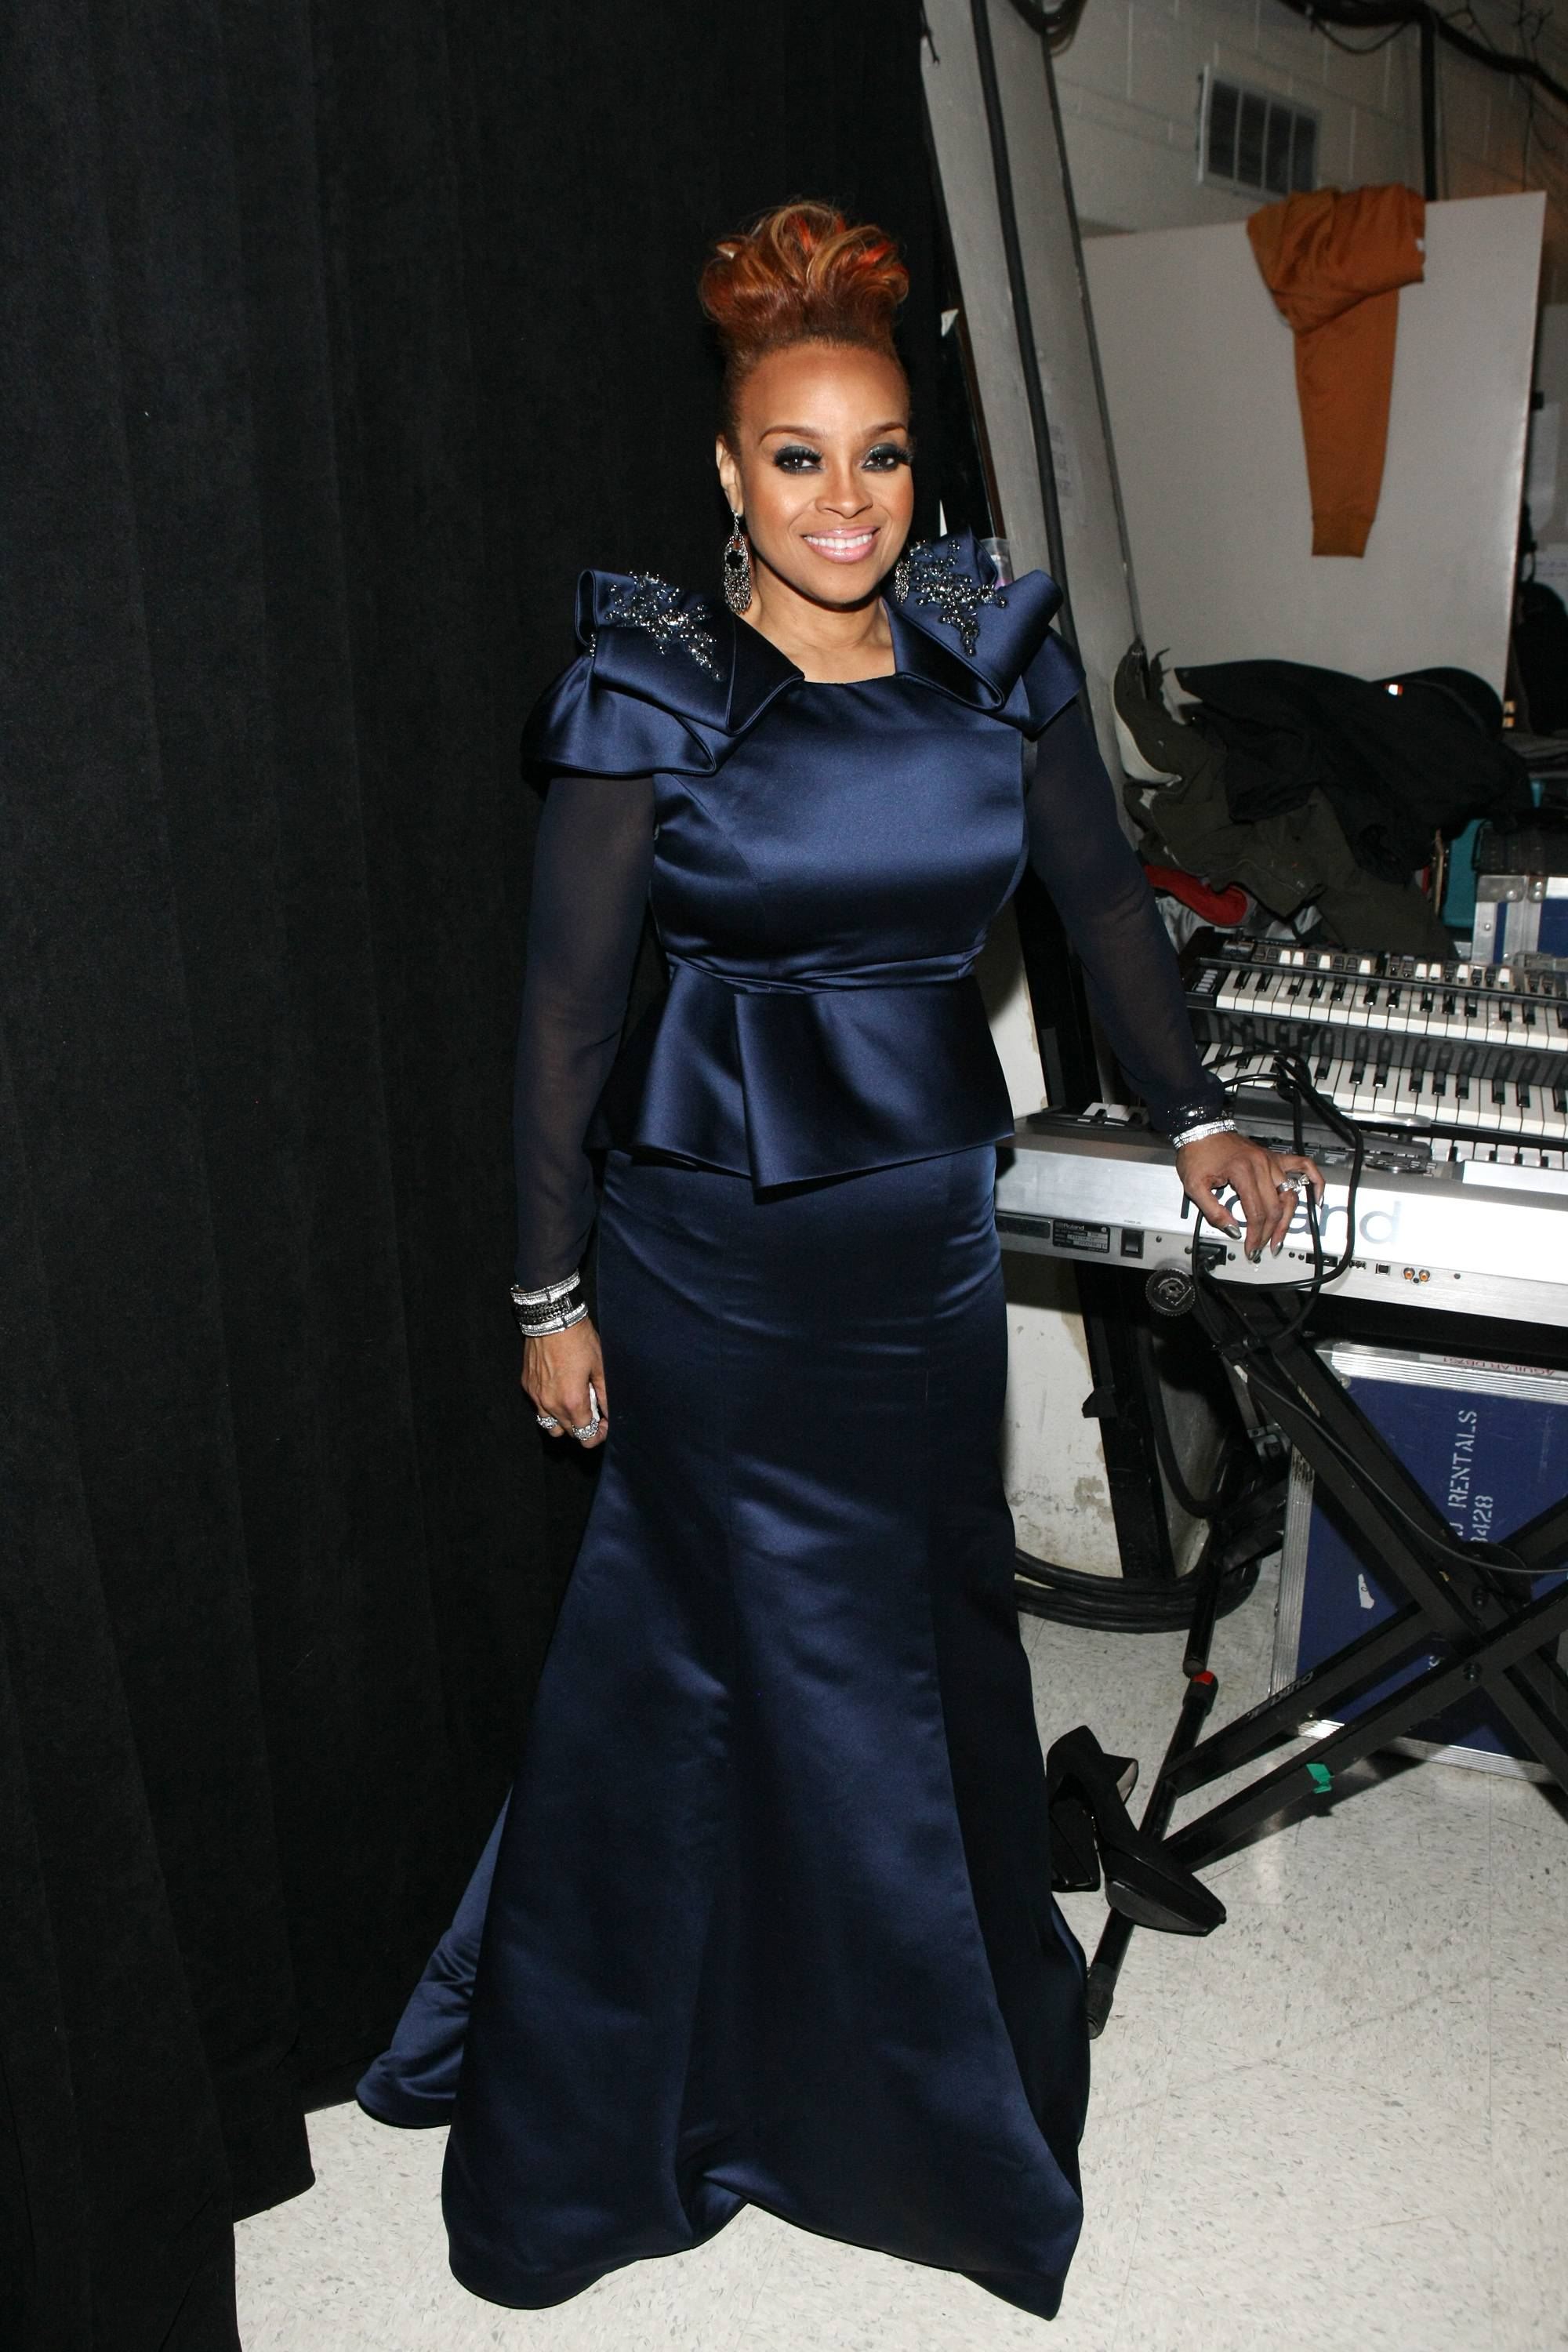 Phenomenal Woman  - The gorgeous Karen Clark Sheard is much more than a singer. Her artistry ranges from writer to vocalist to minister and she continues to inspire some of our favorite artists, like Faith Evans and Mariah Carey, to pursue their dreams. (Photo: Bennett Raglin/BET/Getty Images for BET)